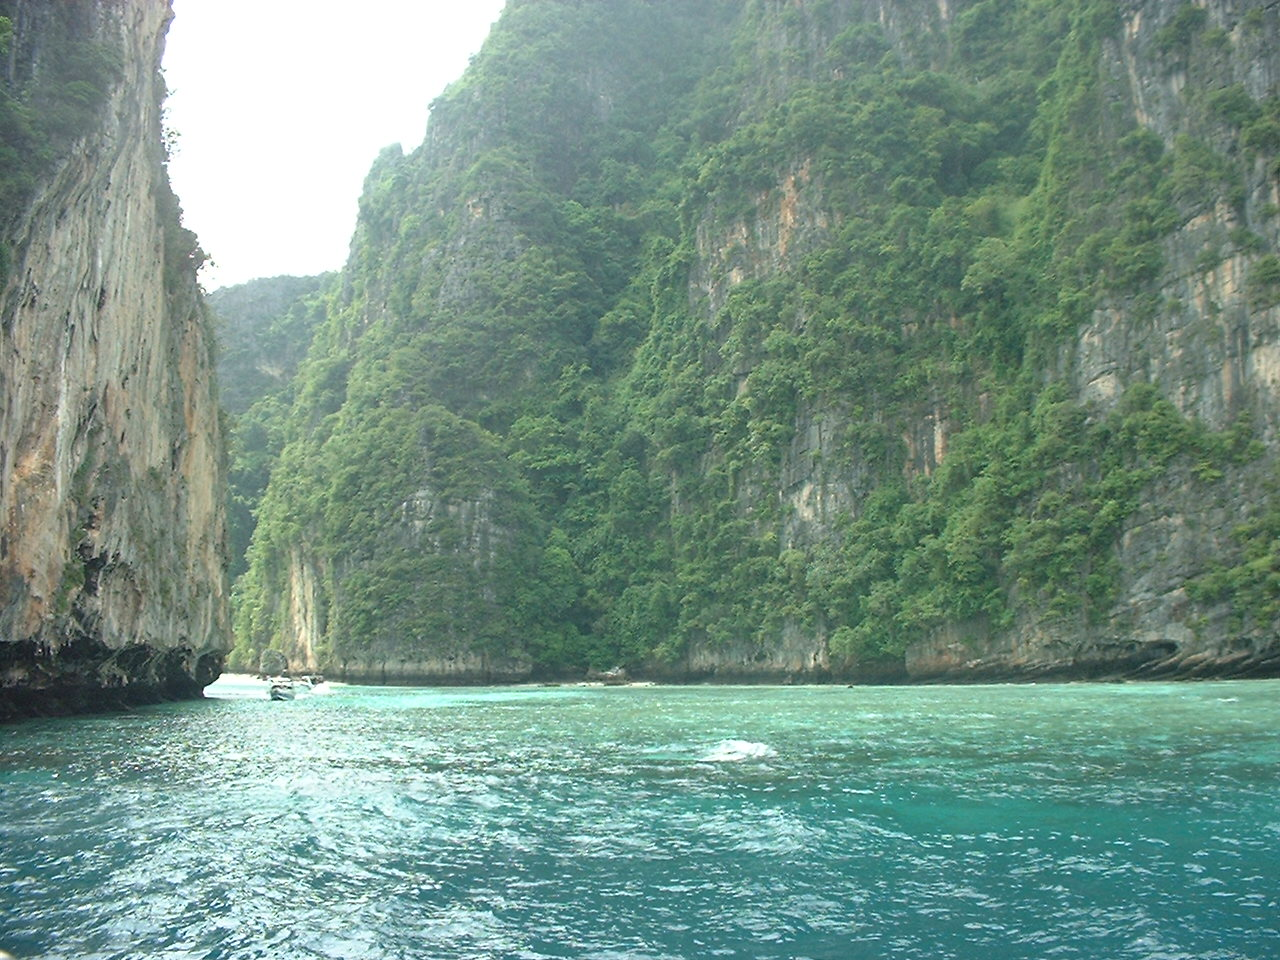 An impressive view of some sea-side walls during a day trip to a favorite dive spot.